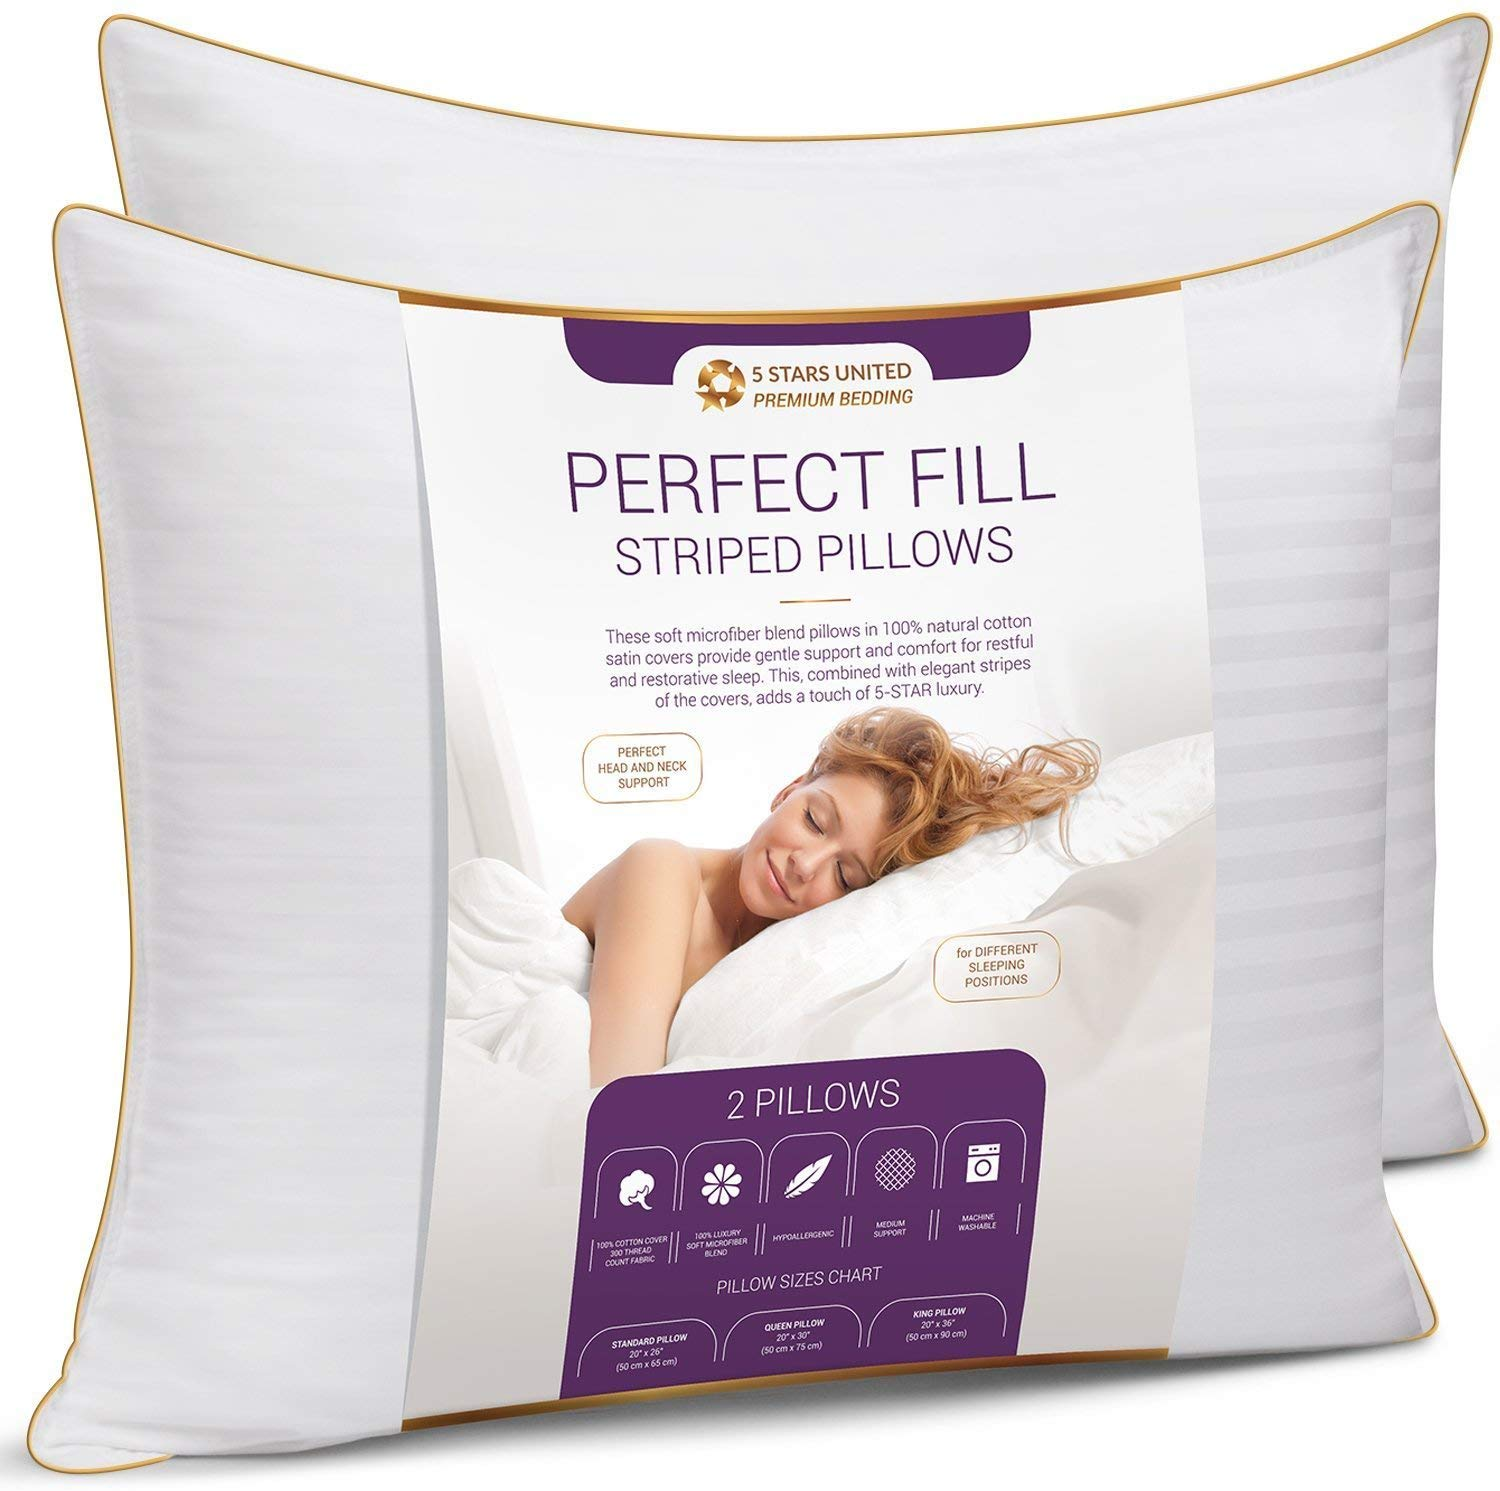 Top 10 Best King Size Pillows in 2021 Reviews